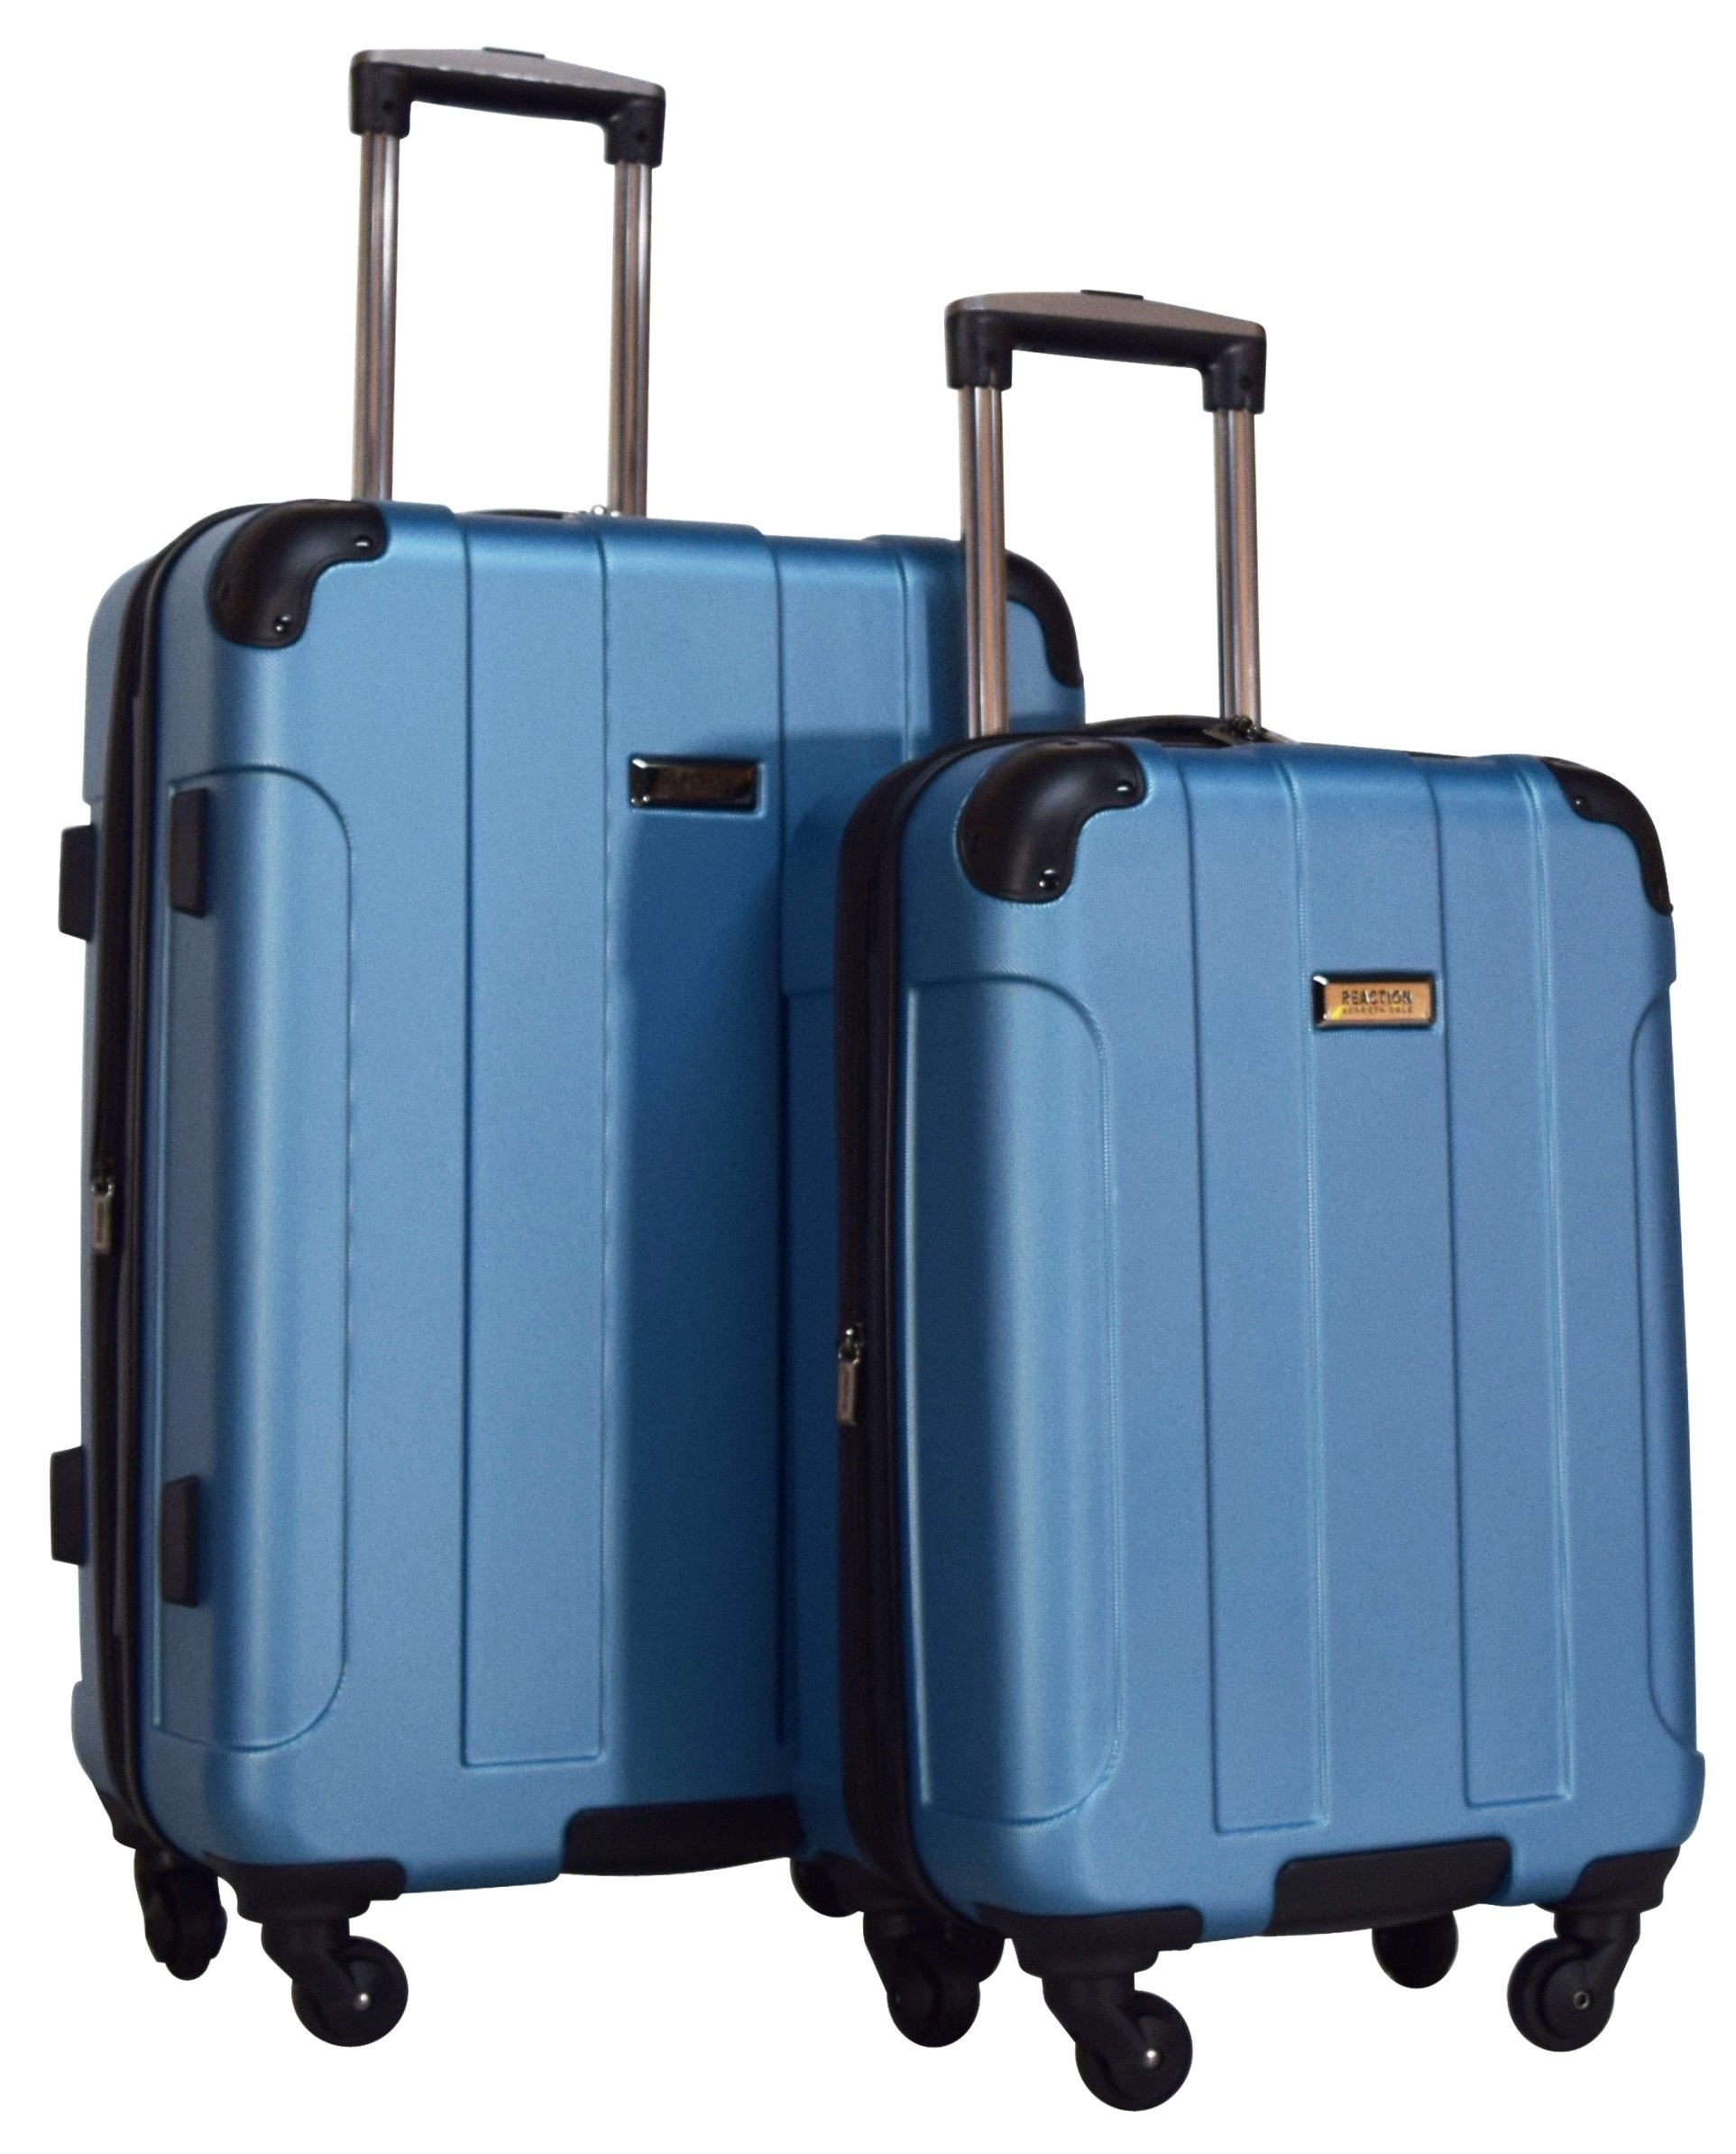 Kenneth Cole Reaction Central Park 2-Piece Expandable Luggage Spinner Set: 24'' and 20'' (Ocean Blue)